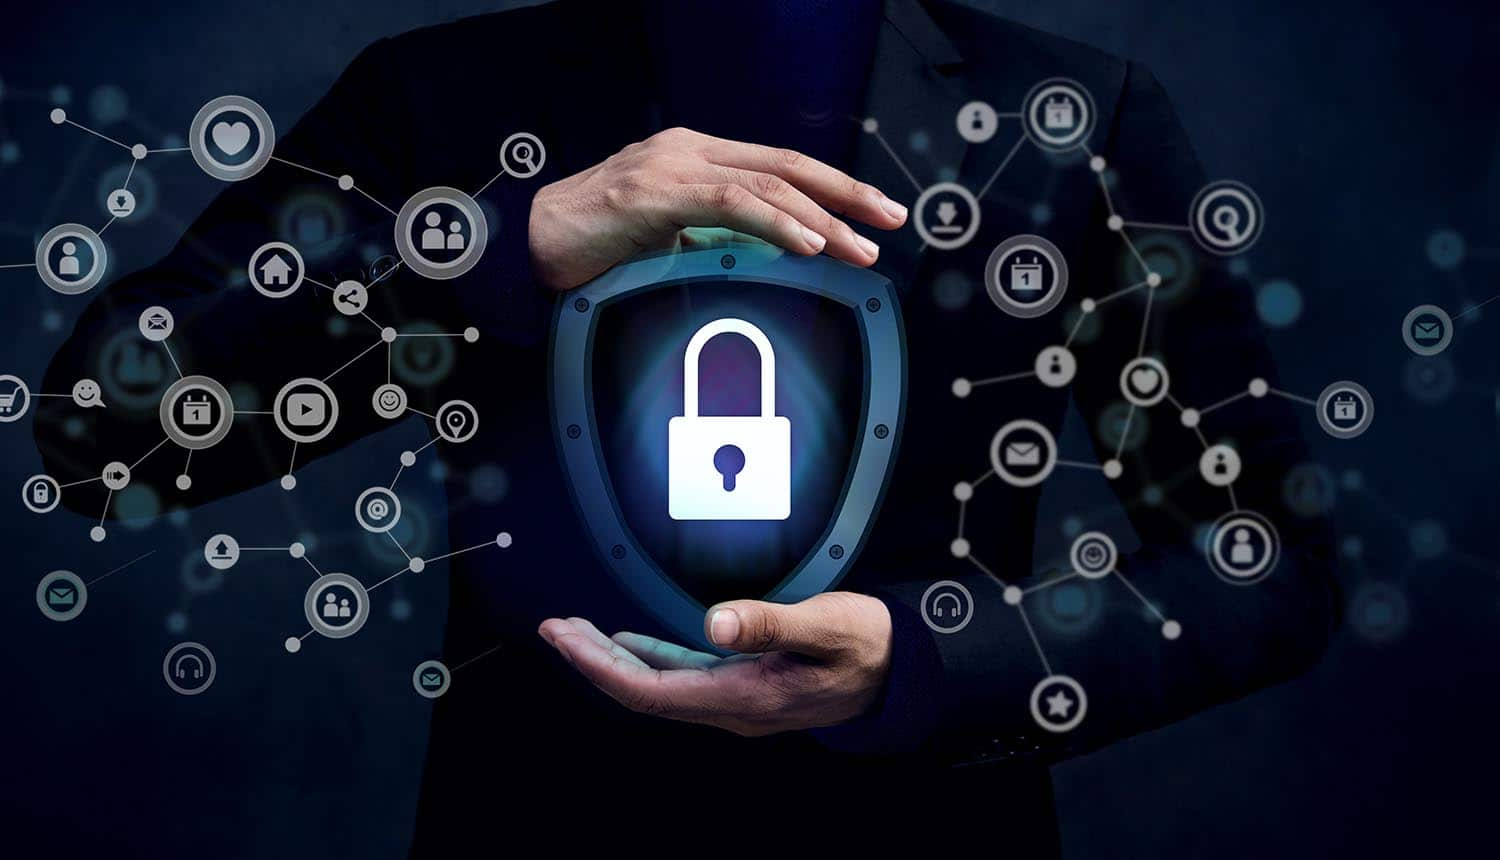 Locked Key inside a shield shows need to keep websites secure and customers safe